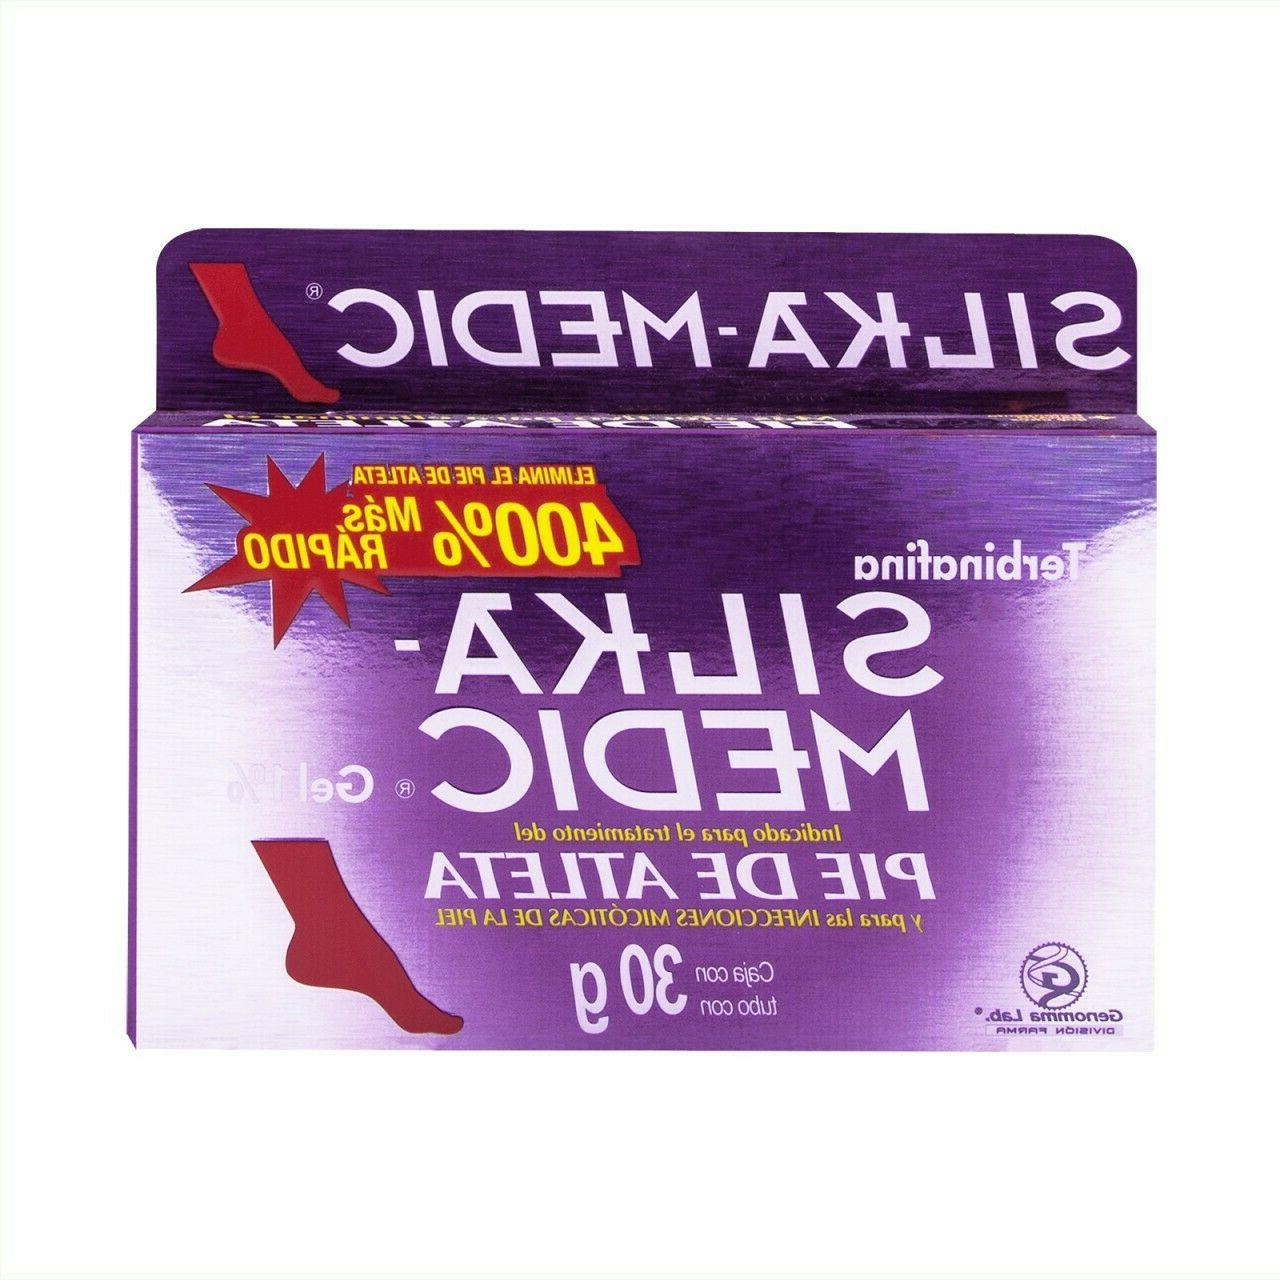 gel 30g mexican original pie de atleta